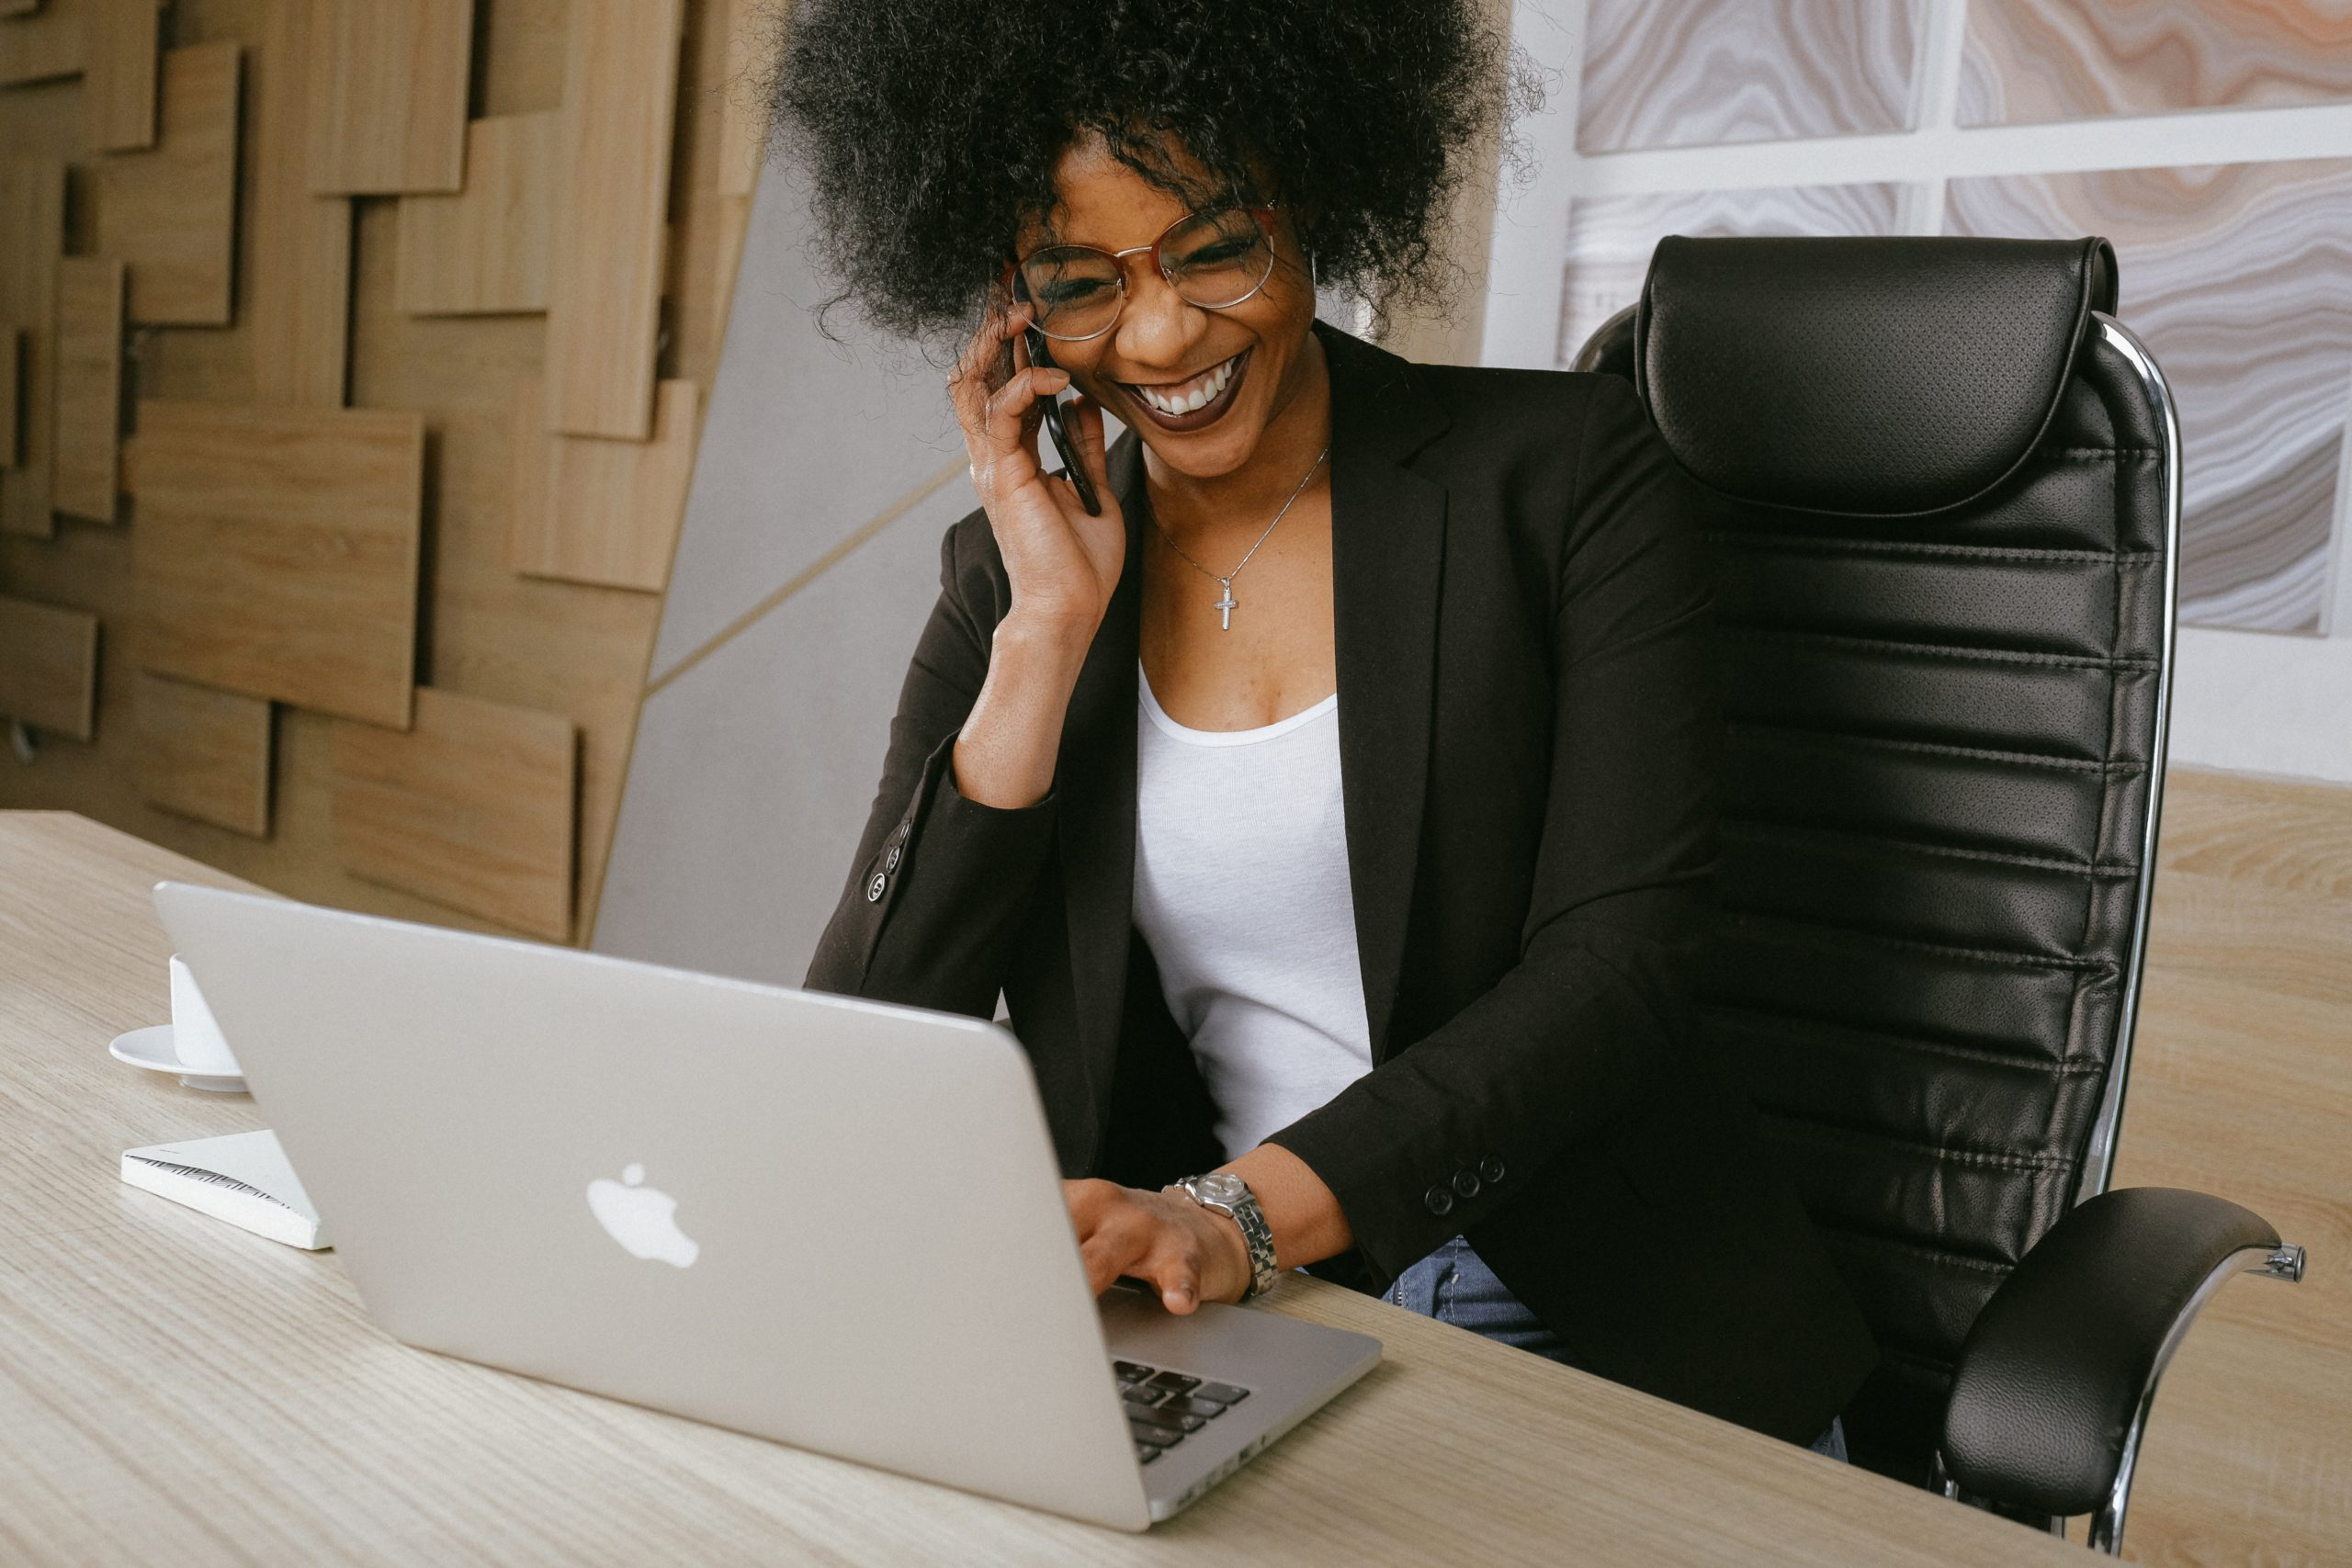 Woman in black blazer smiling and speaking on her mobile phone at her work desk.